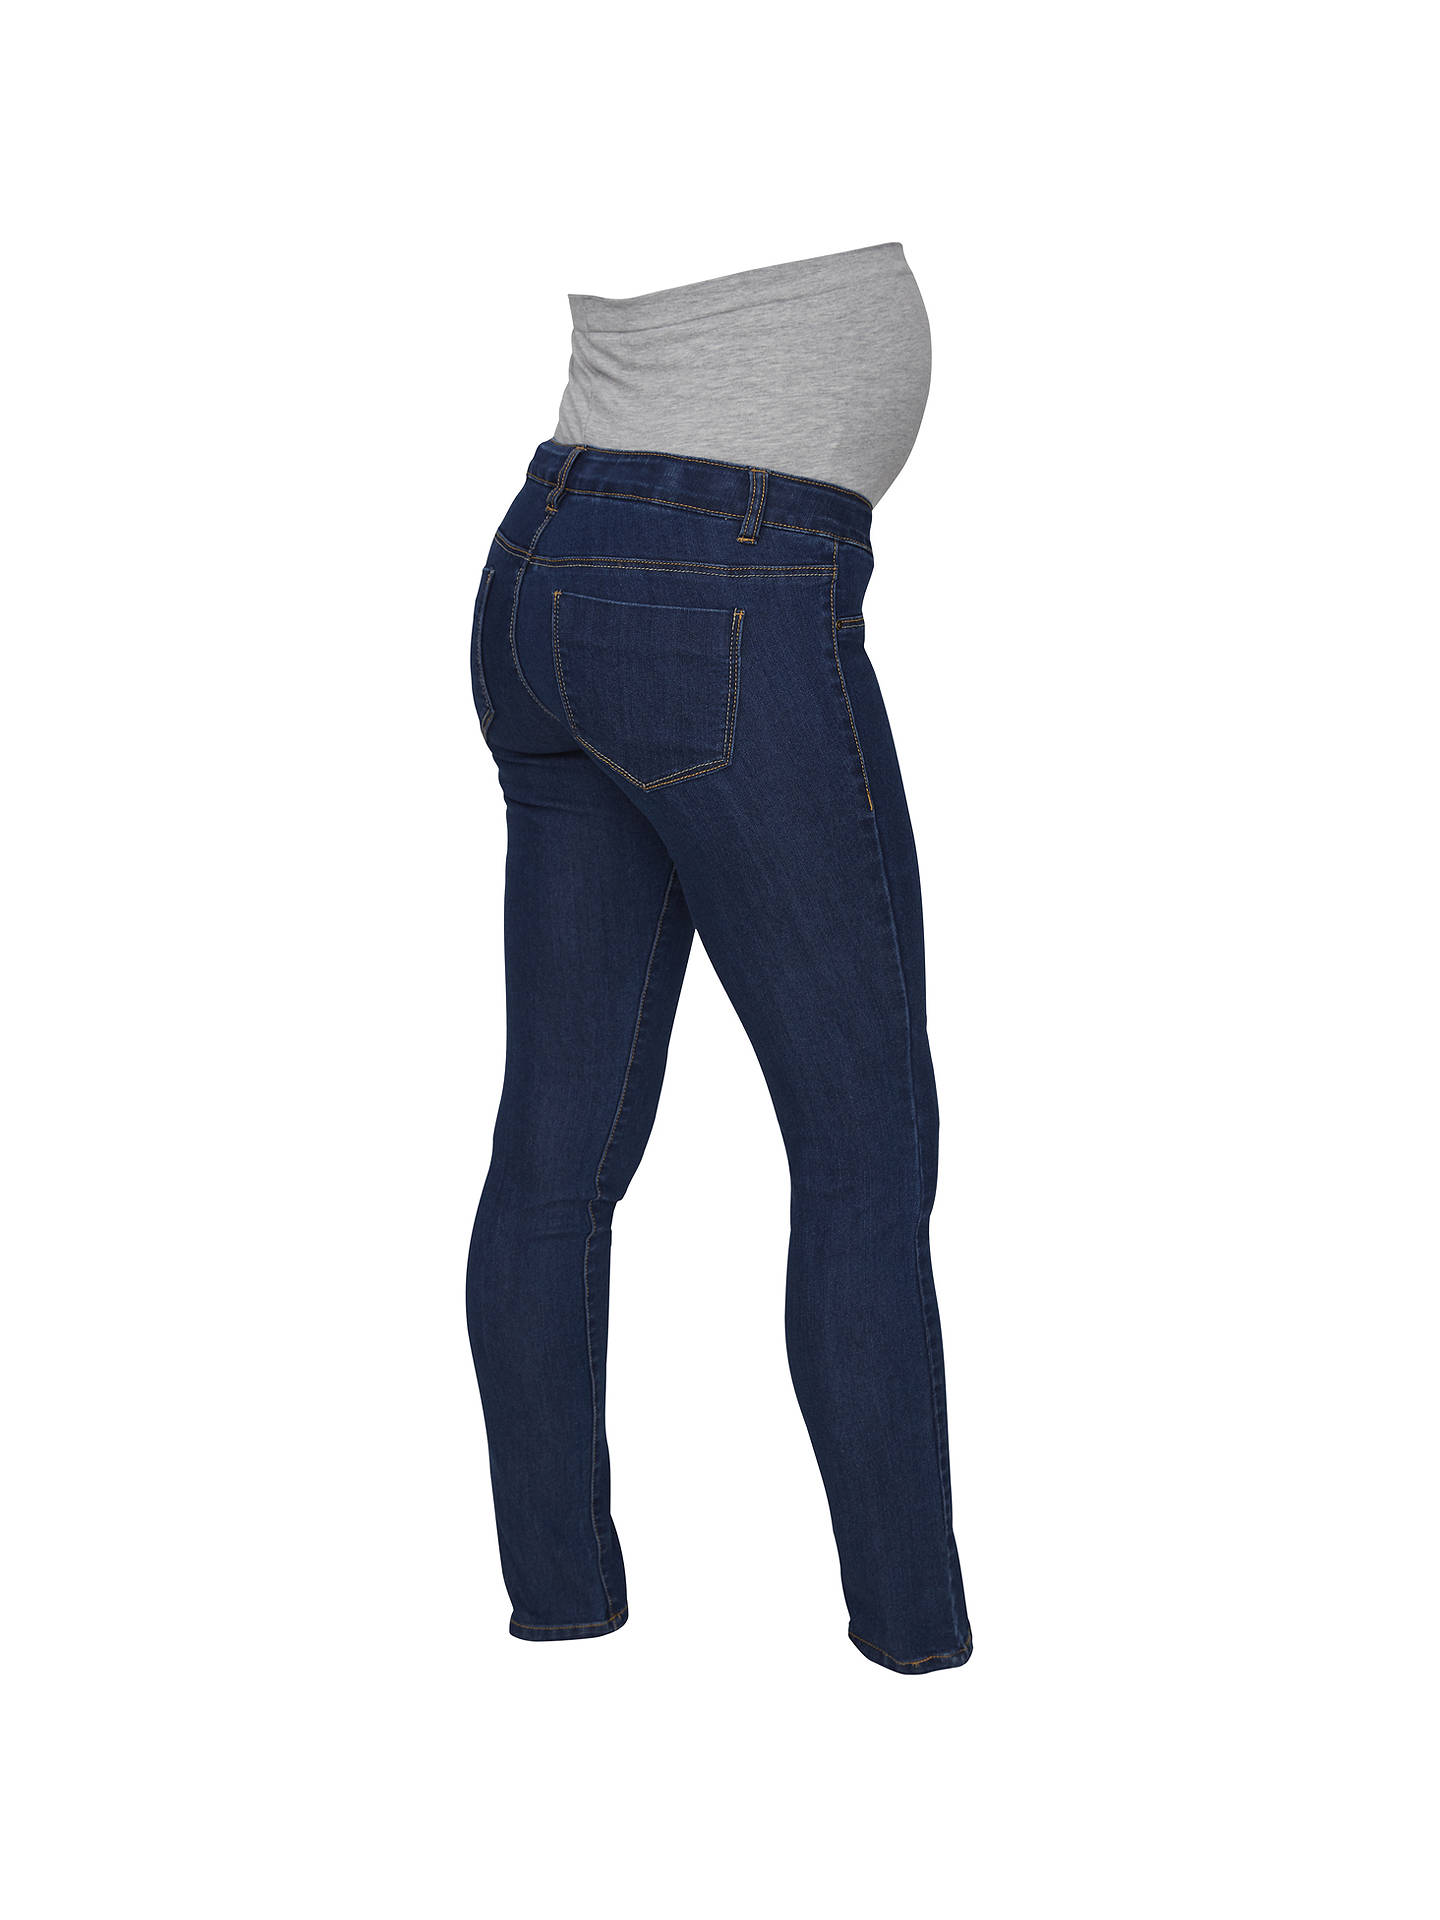 53d40c5807b17 Buy Mamalicious Julia Slim Fit Maternity Jeans, Denim Blue, 26R Online at  johnlewis.